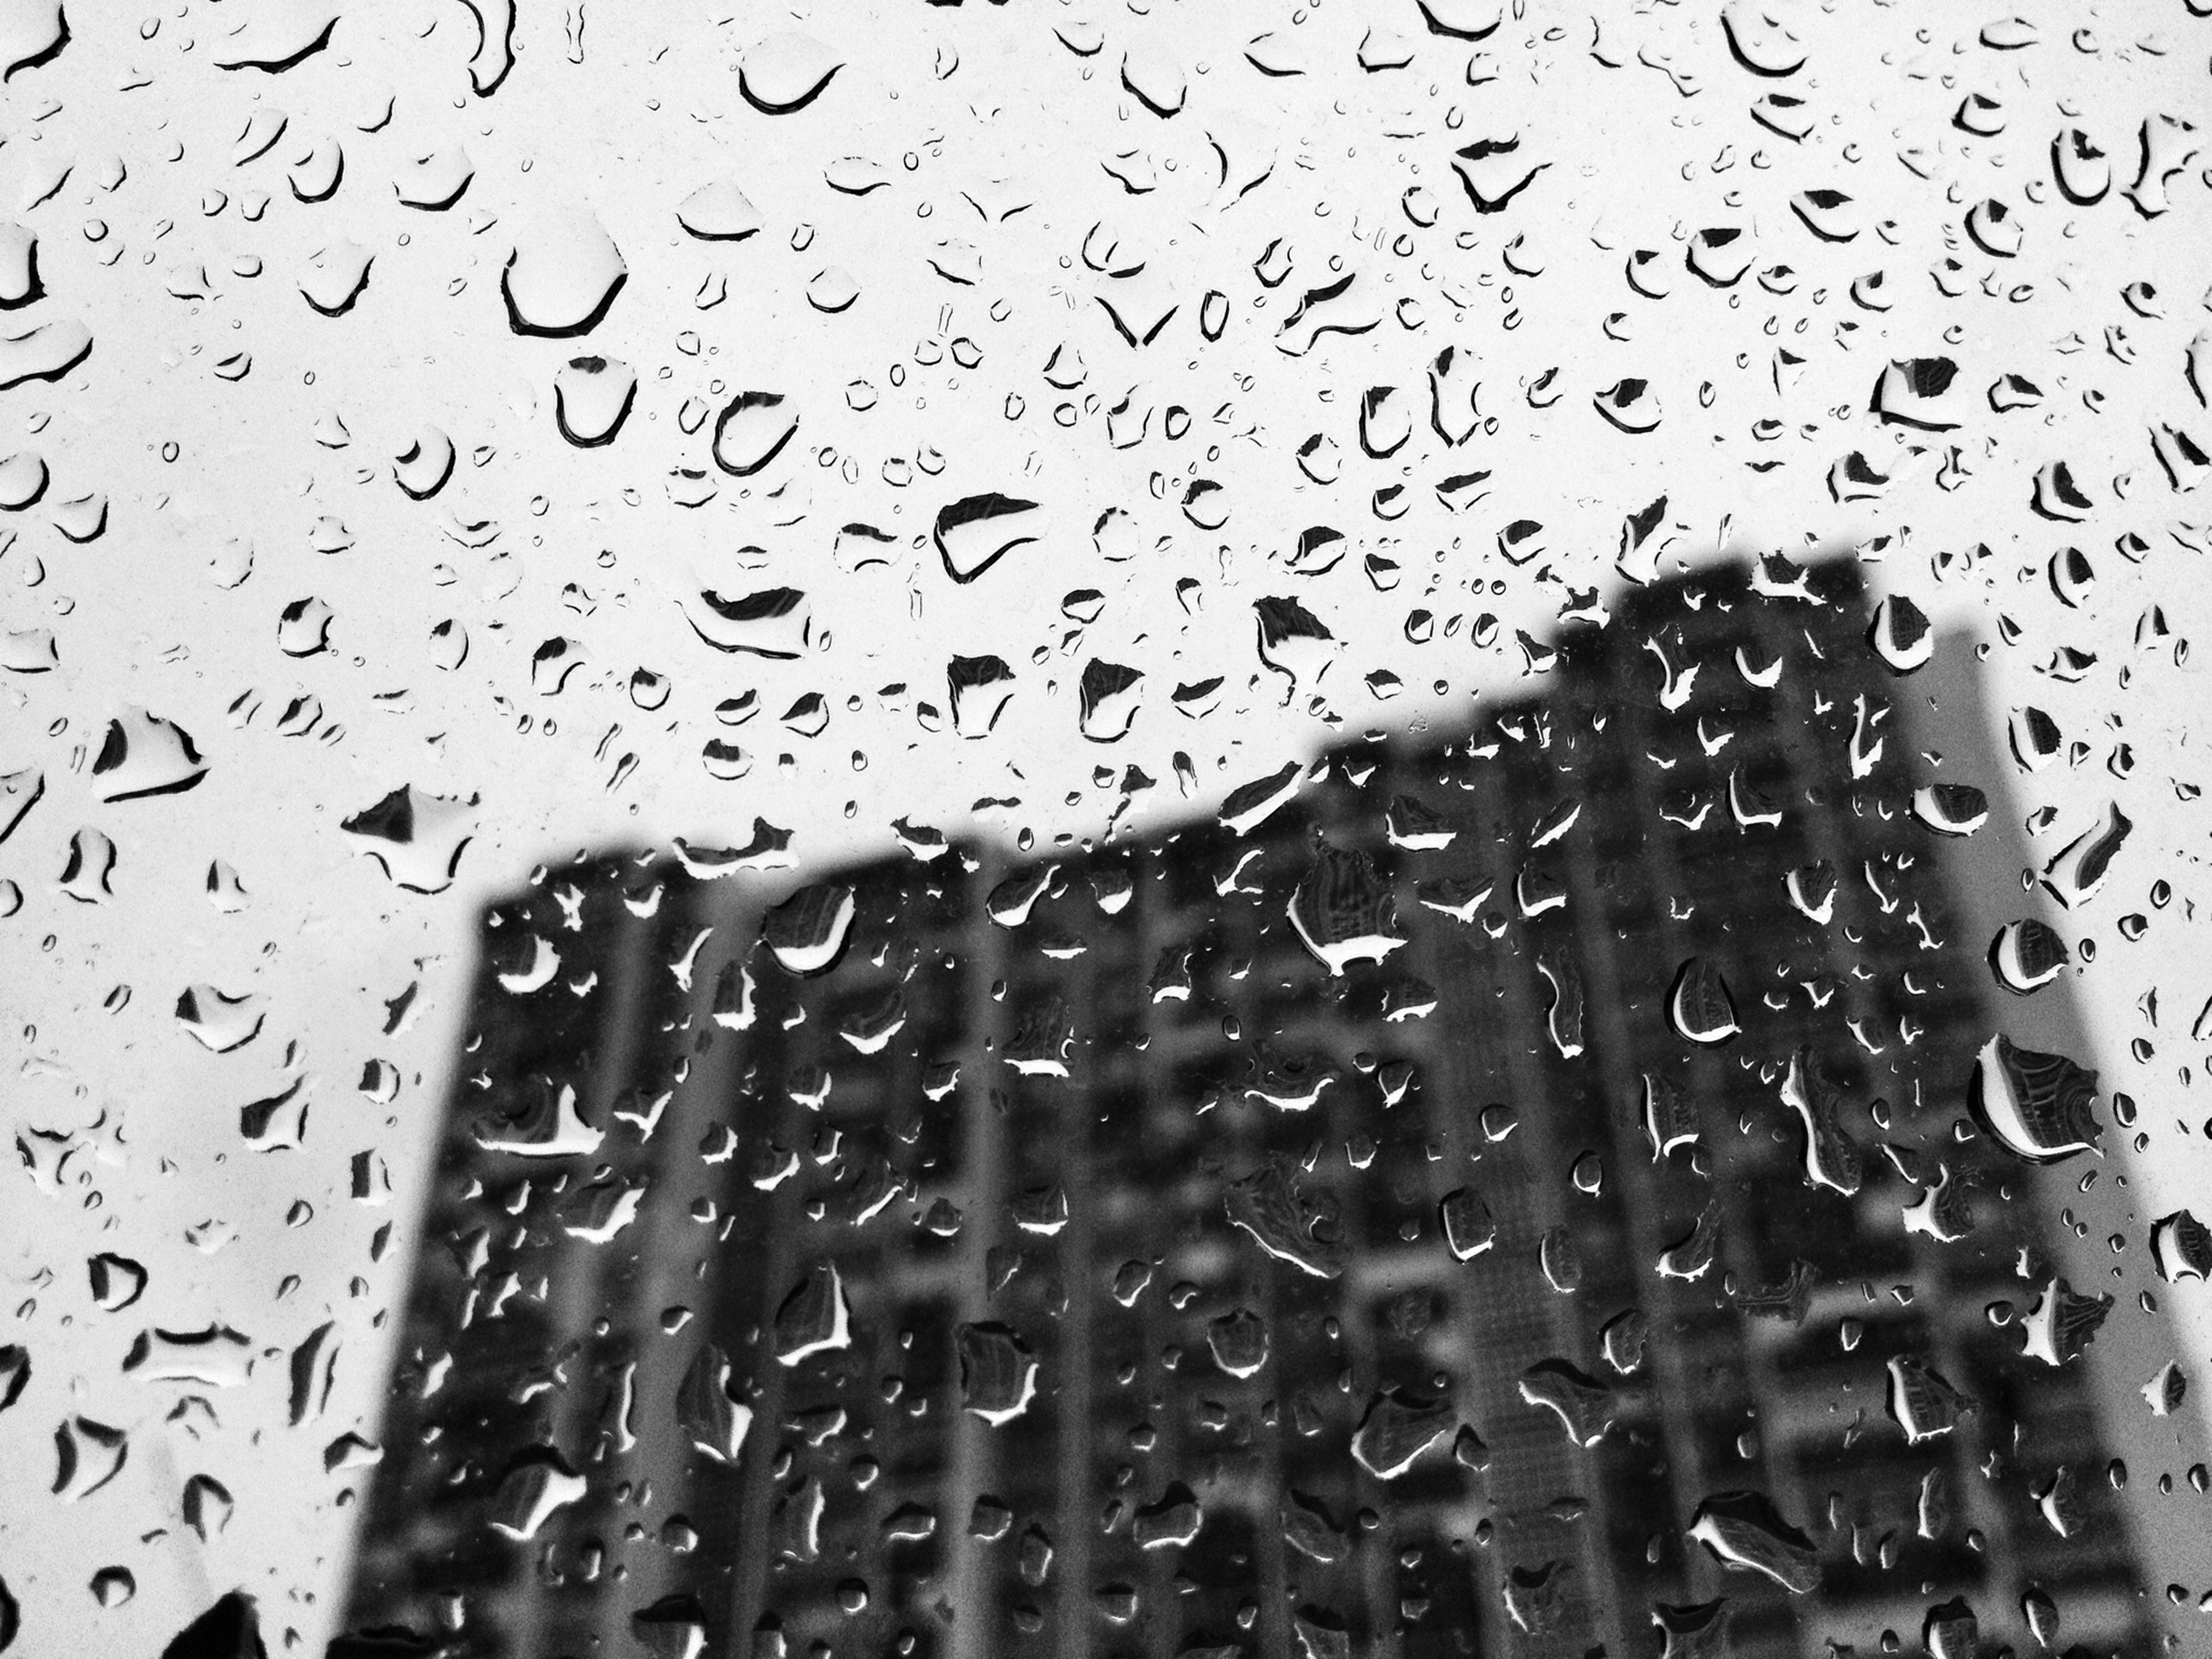 drop, wet, window, indoors, water, rain, transparent, glass - material, raindrop, full frame, weather, backgrounds, season, focus on foreground, close-up, glass, sky, built structure, architecture, water drop